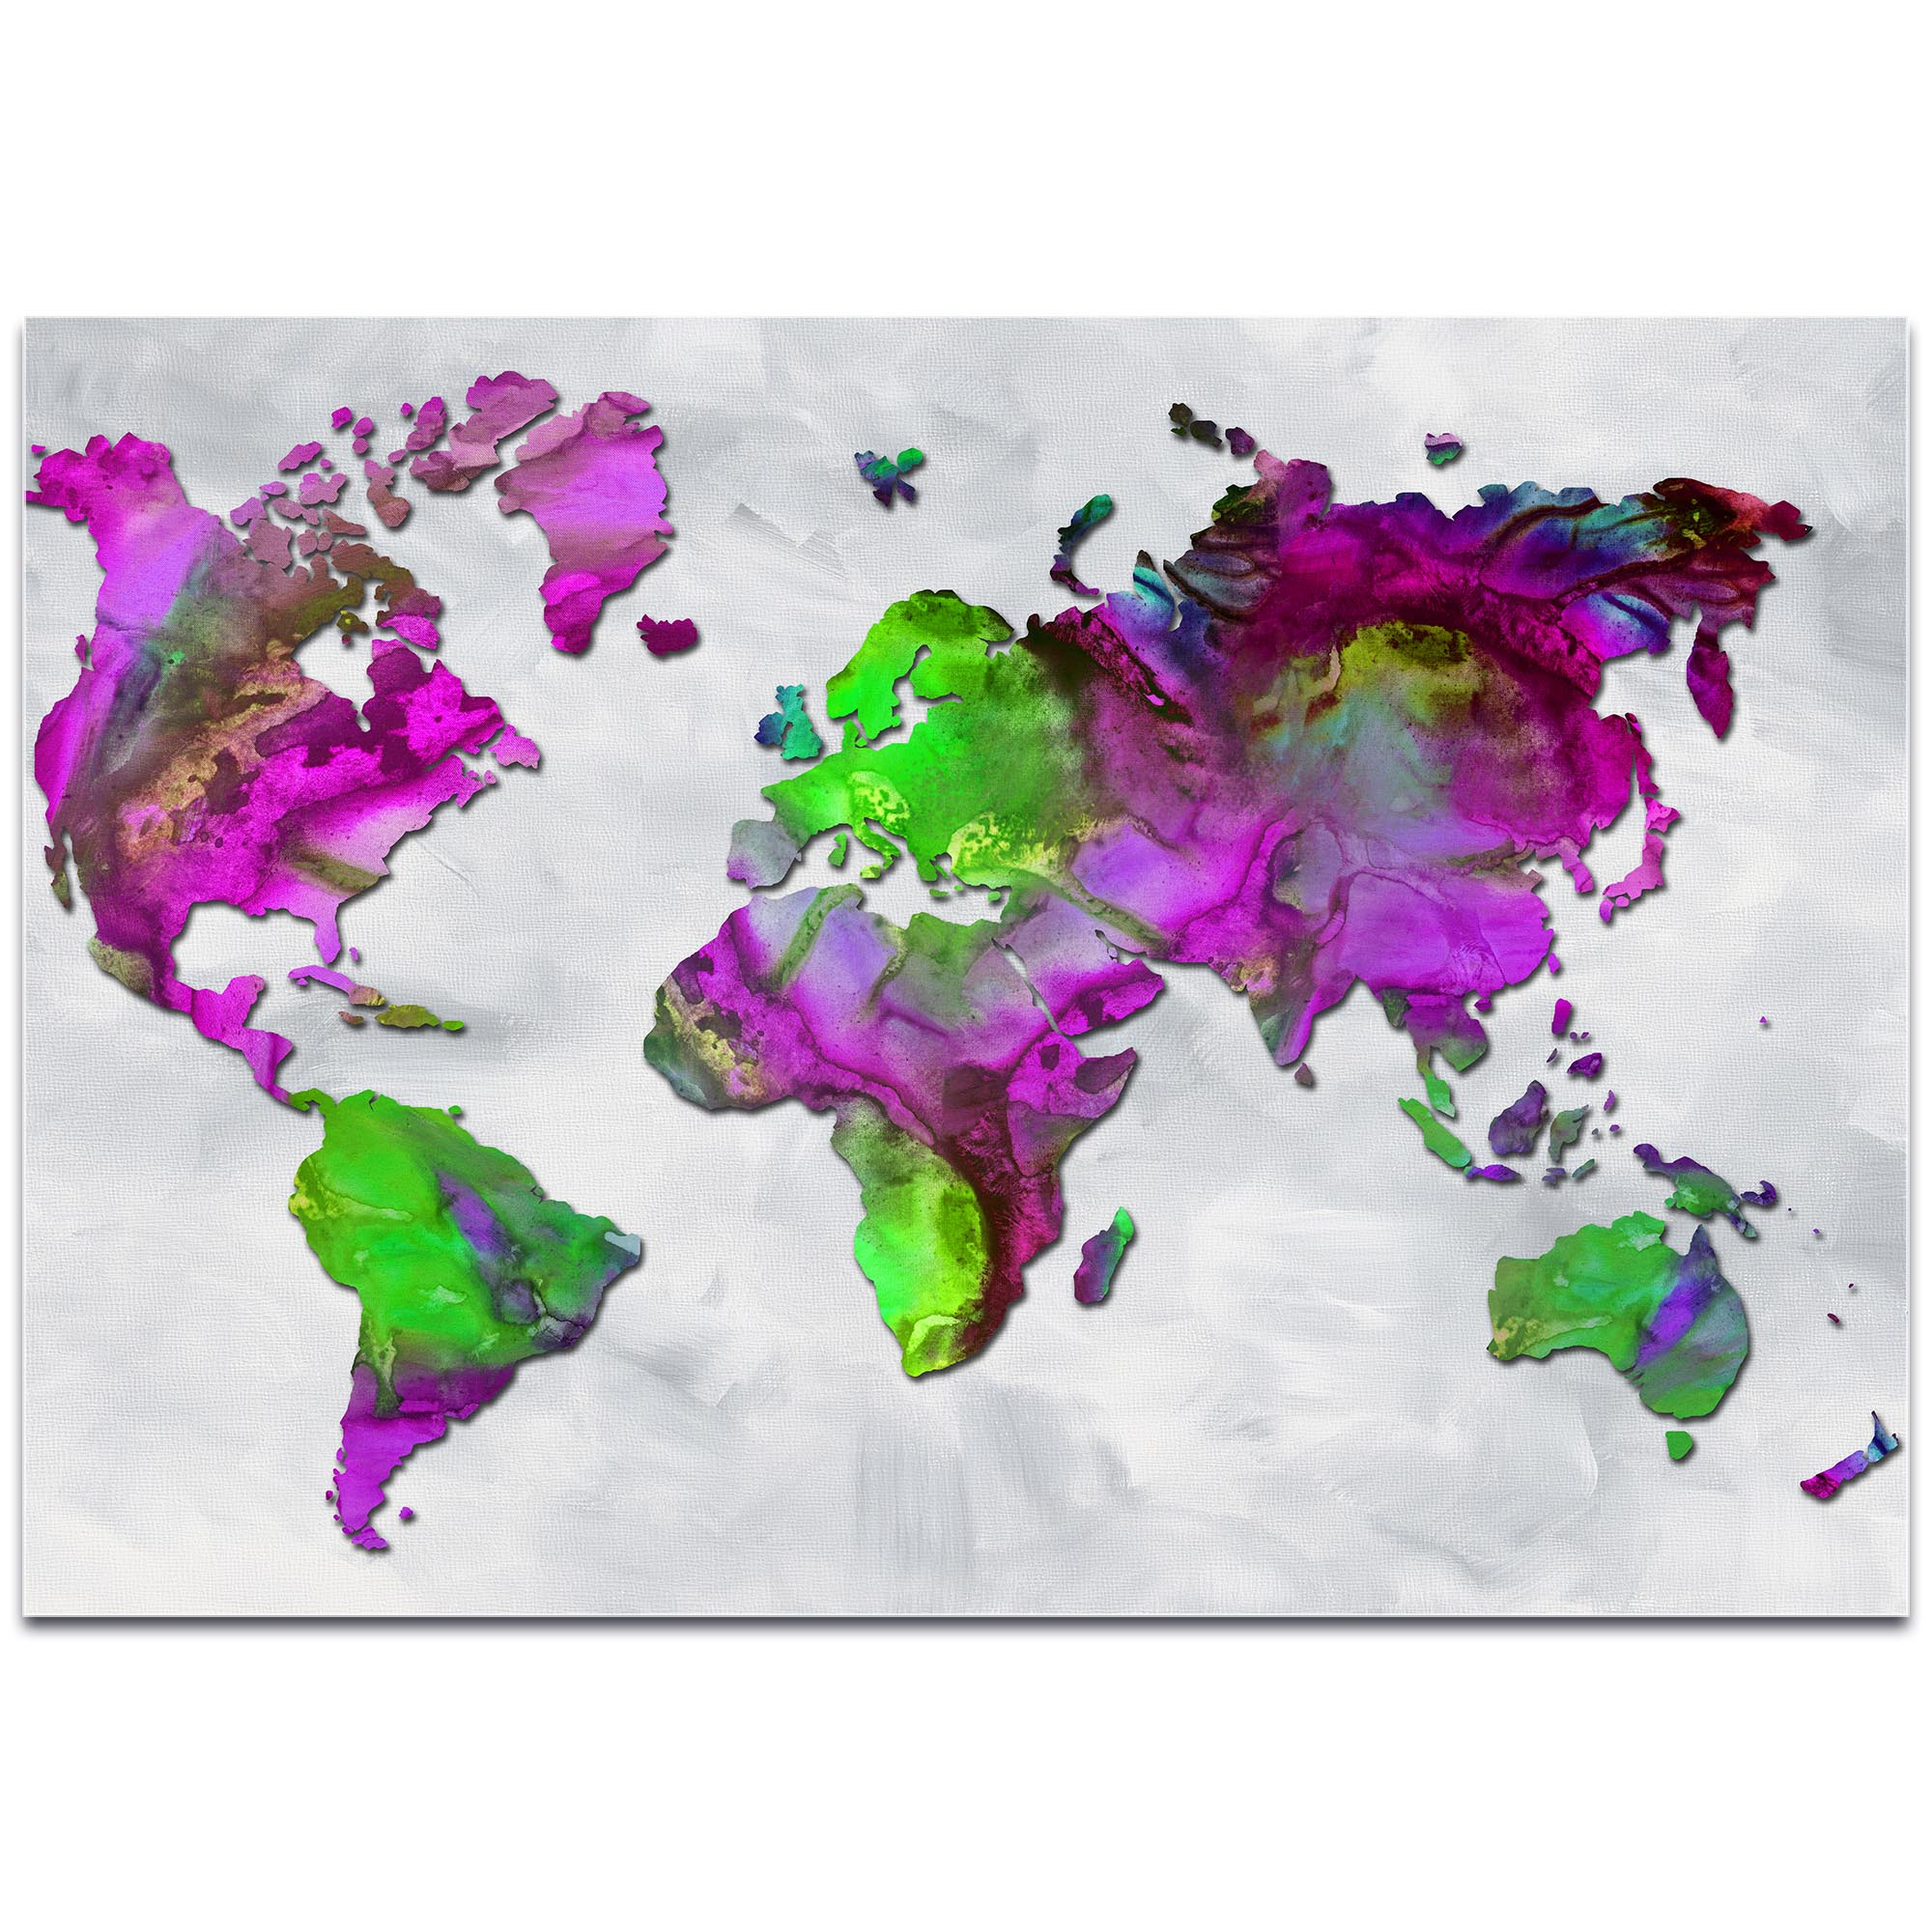 Abstract World Map 'The Beauty of Color Overlay v2' - Modern Map Art on Metal or Acrylic - Image 2